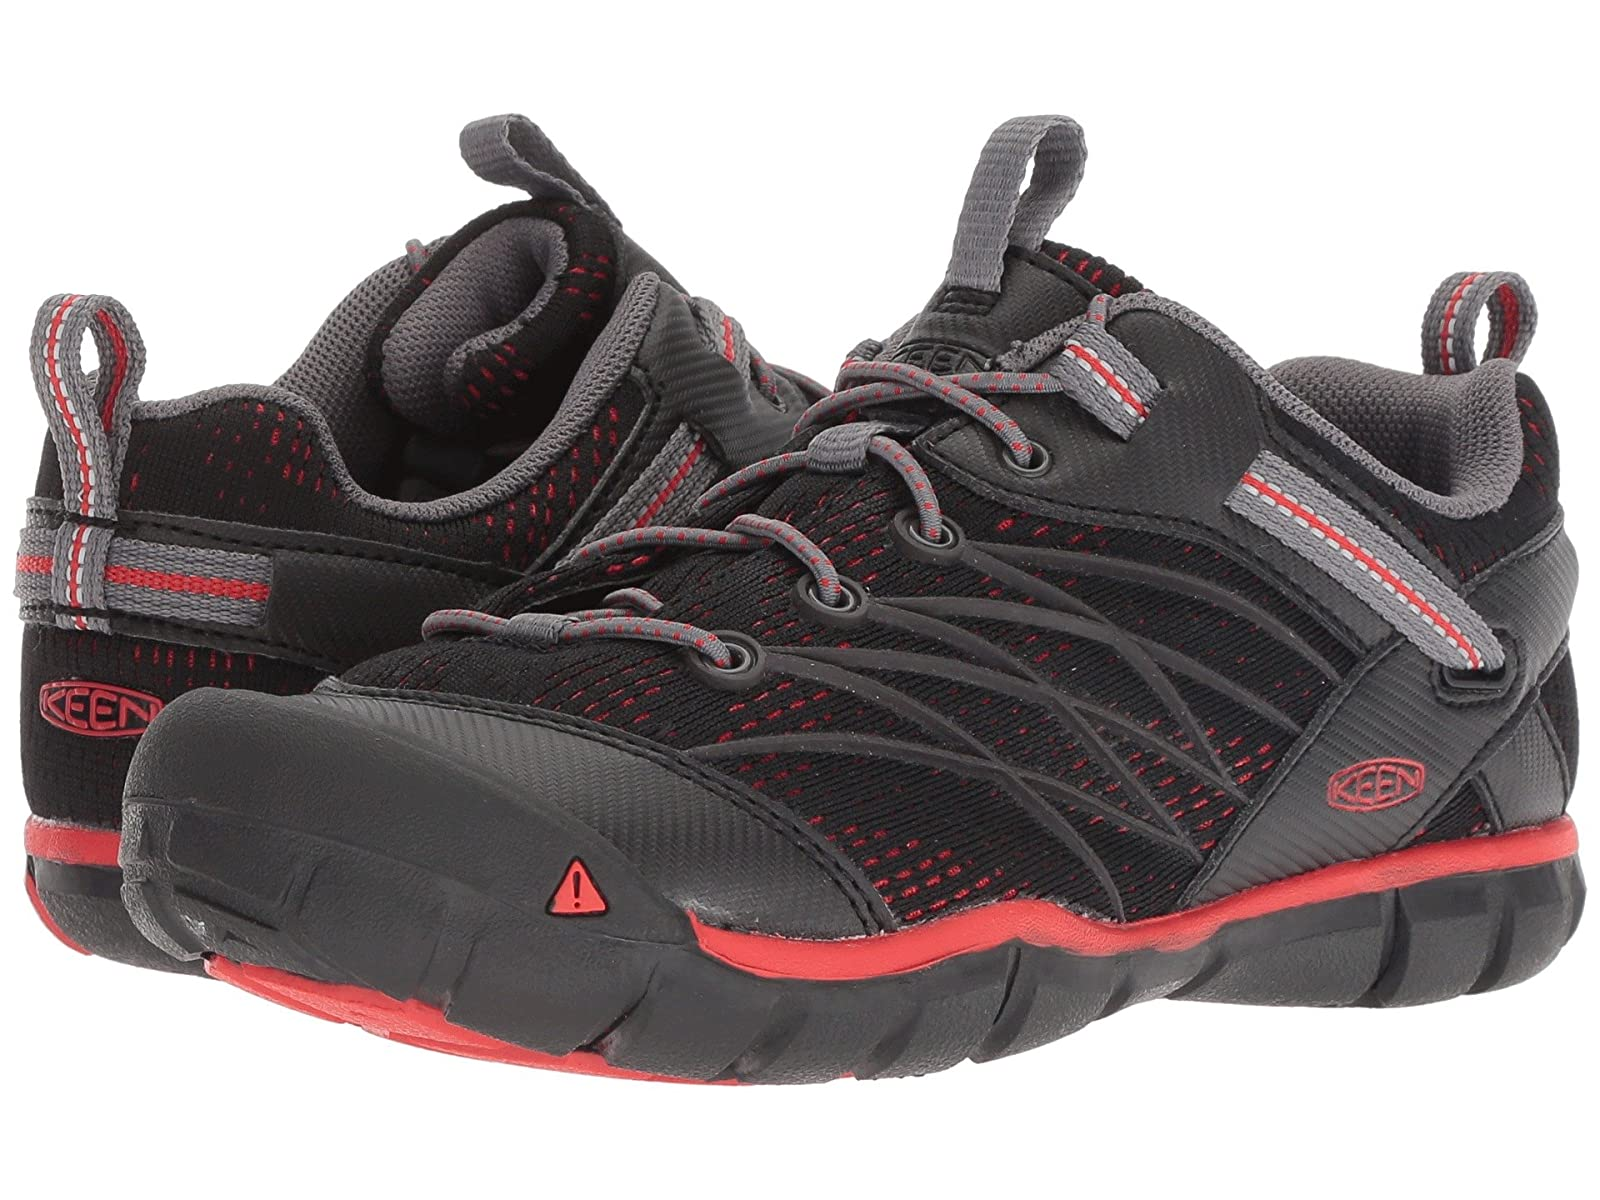 Keen Kids Chandler CNX (Little And Kid/Big Kid)- Different Styles And (Little Styles -Man/Woman d4563c